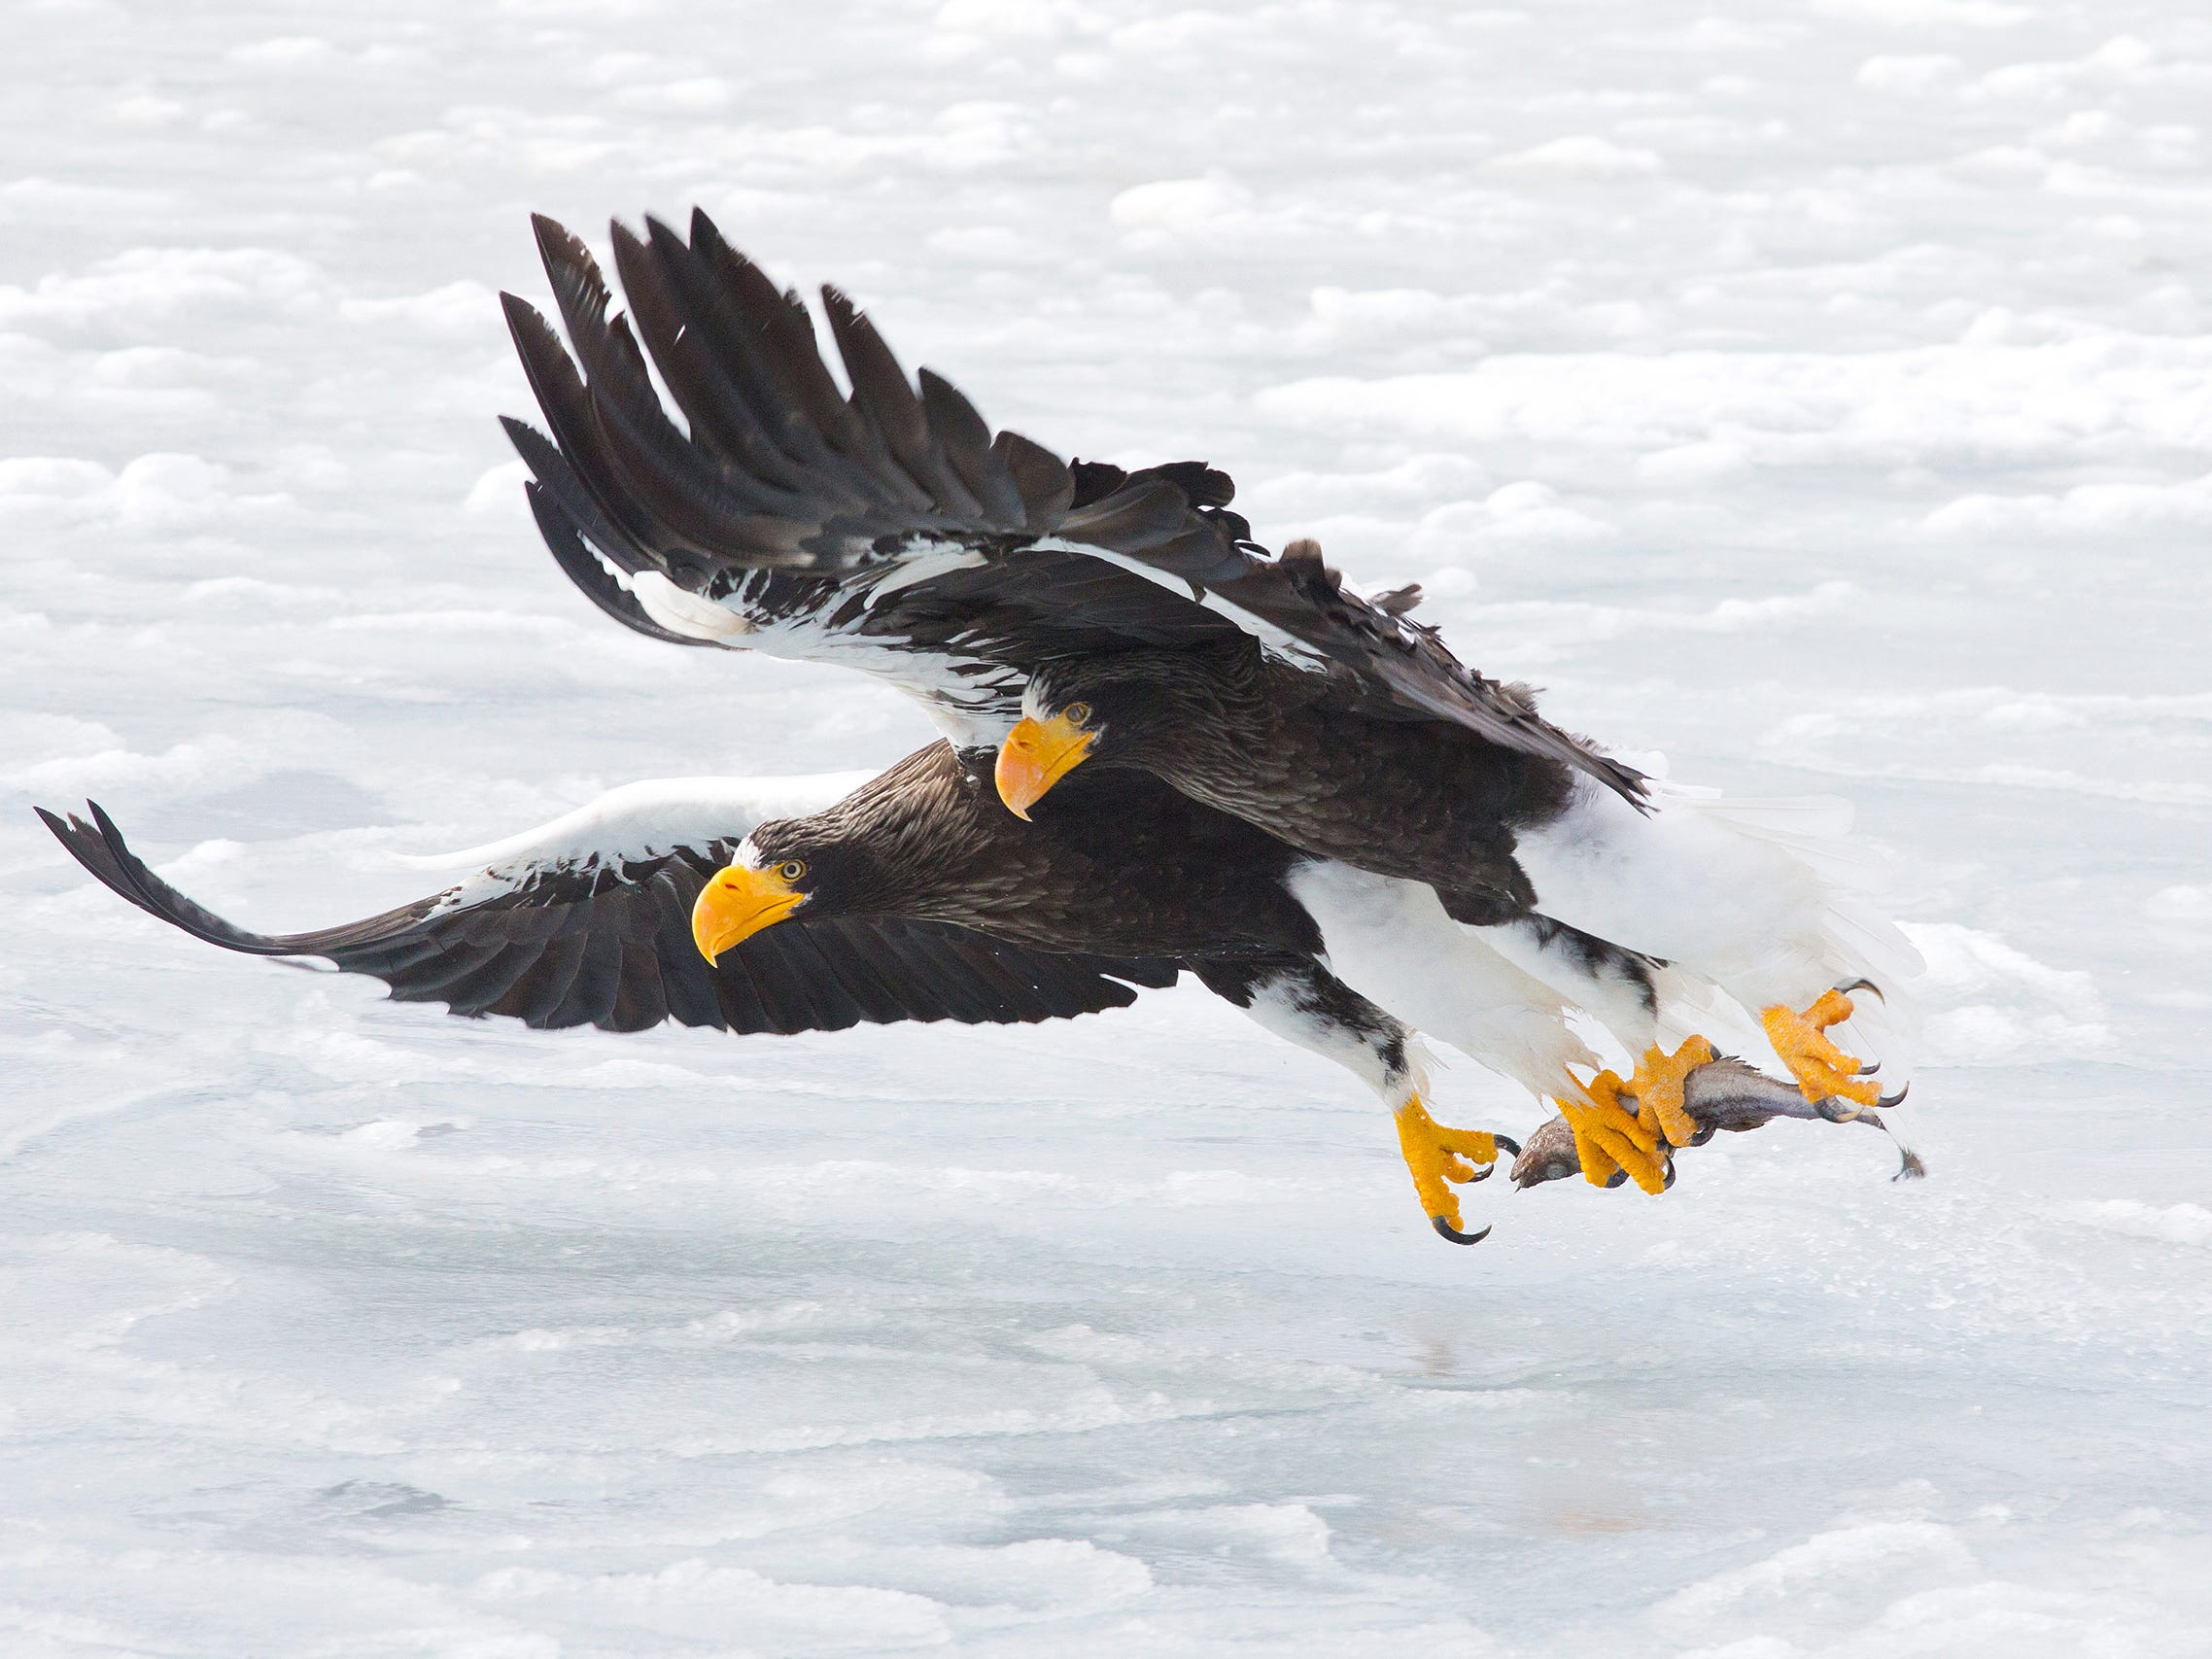 The Extraction by Konstantin Shatenev, Russia -- Every winter, hundreds of Steller's sea eagles migrate from Russia, to the relatively ice-free northeastern coast of Hokkaido, Japan. They hunt for fish among the ices floes and also scavenge, following the fishing boats to feed on any discards. Konstantin took his image from a boat as the eagles retrieved a dead fish thrown onto the ice. -- Canon1DX + EF300 f4IS USM lens; 1/1250 sec at f13; ISO800.